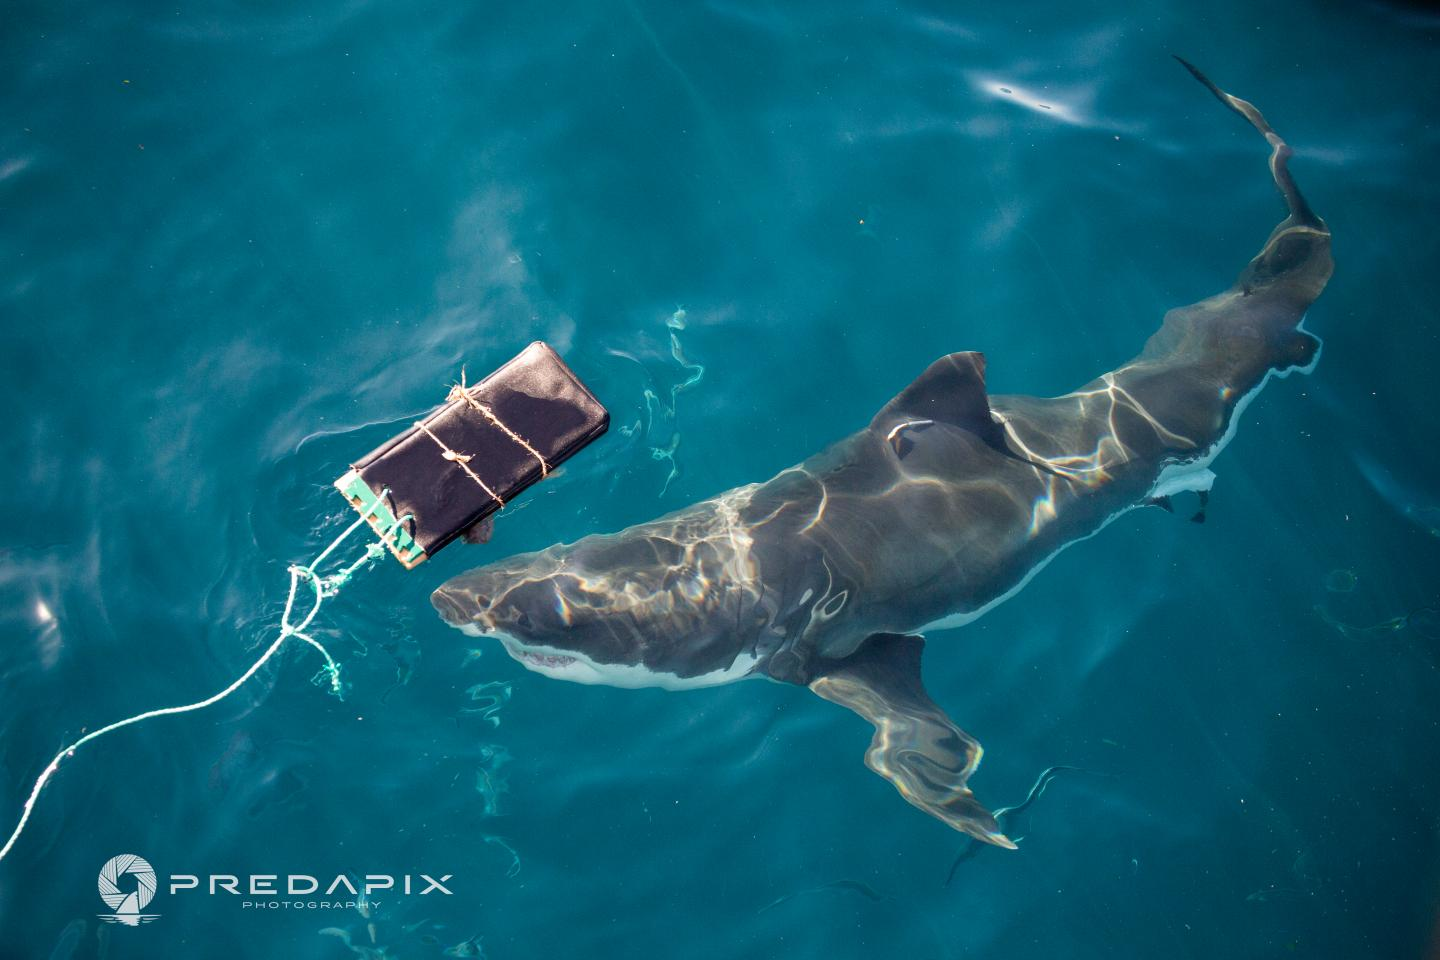 A New Wetsuit Material Tested with Sharks at Neptune Islands